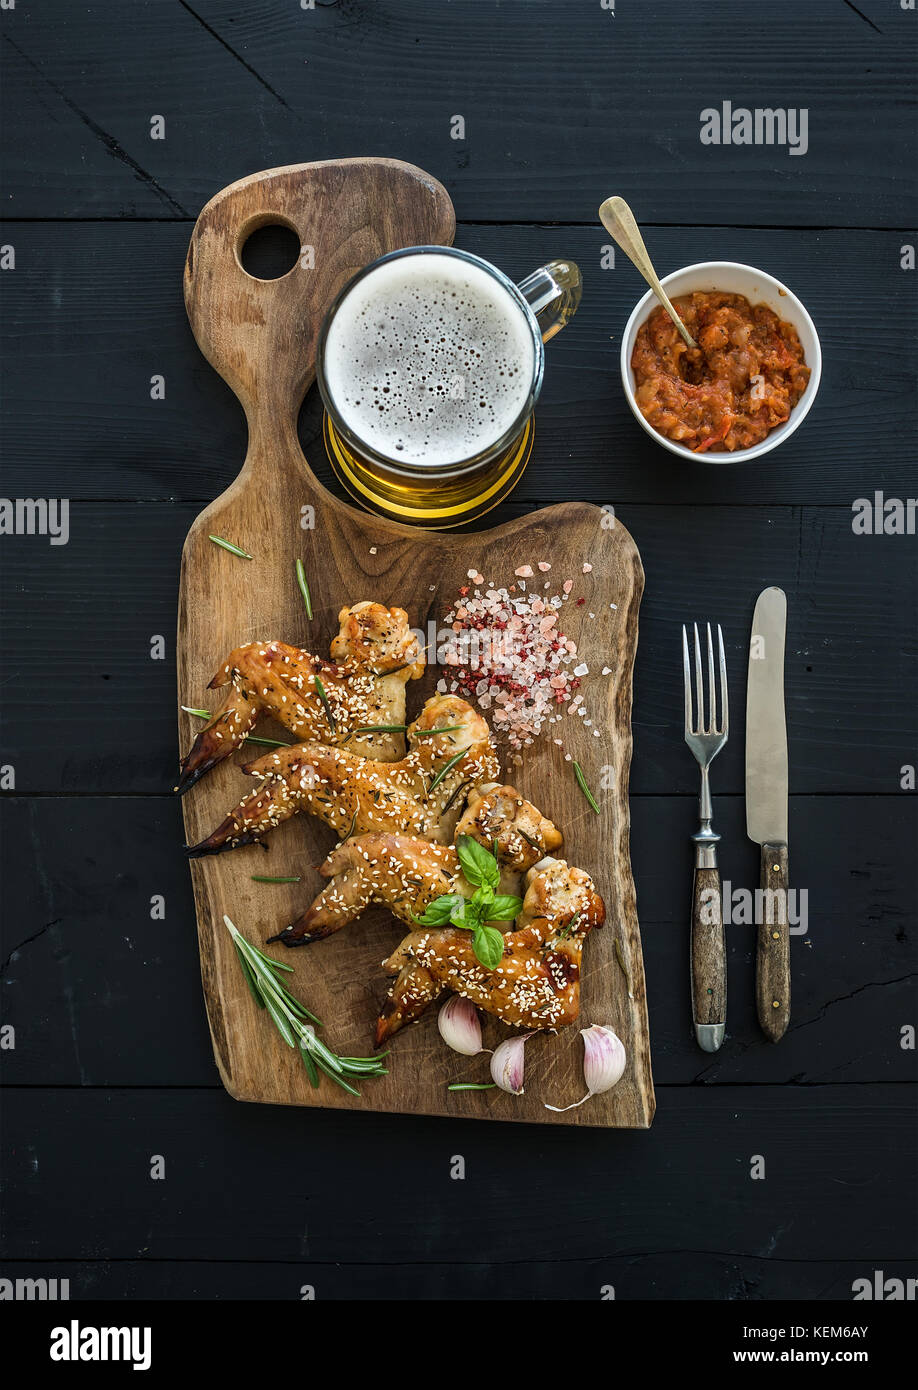 Fried chicken wings on rustic serving board, spicy tomato sauce, herbs and mug of light beer over black wooden backdrop - Stock Image